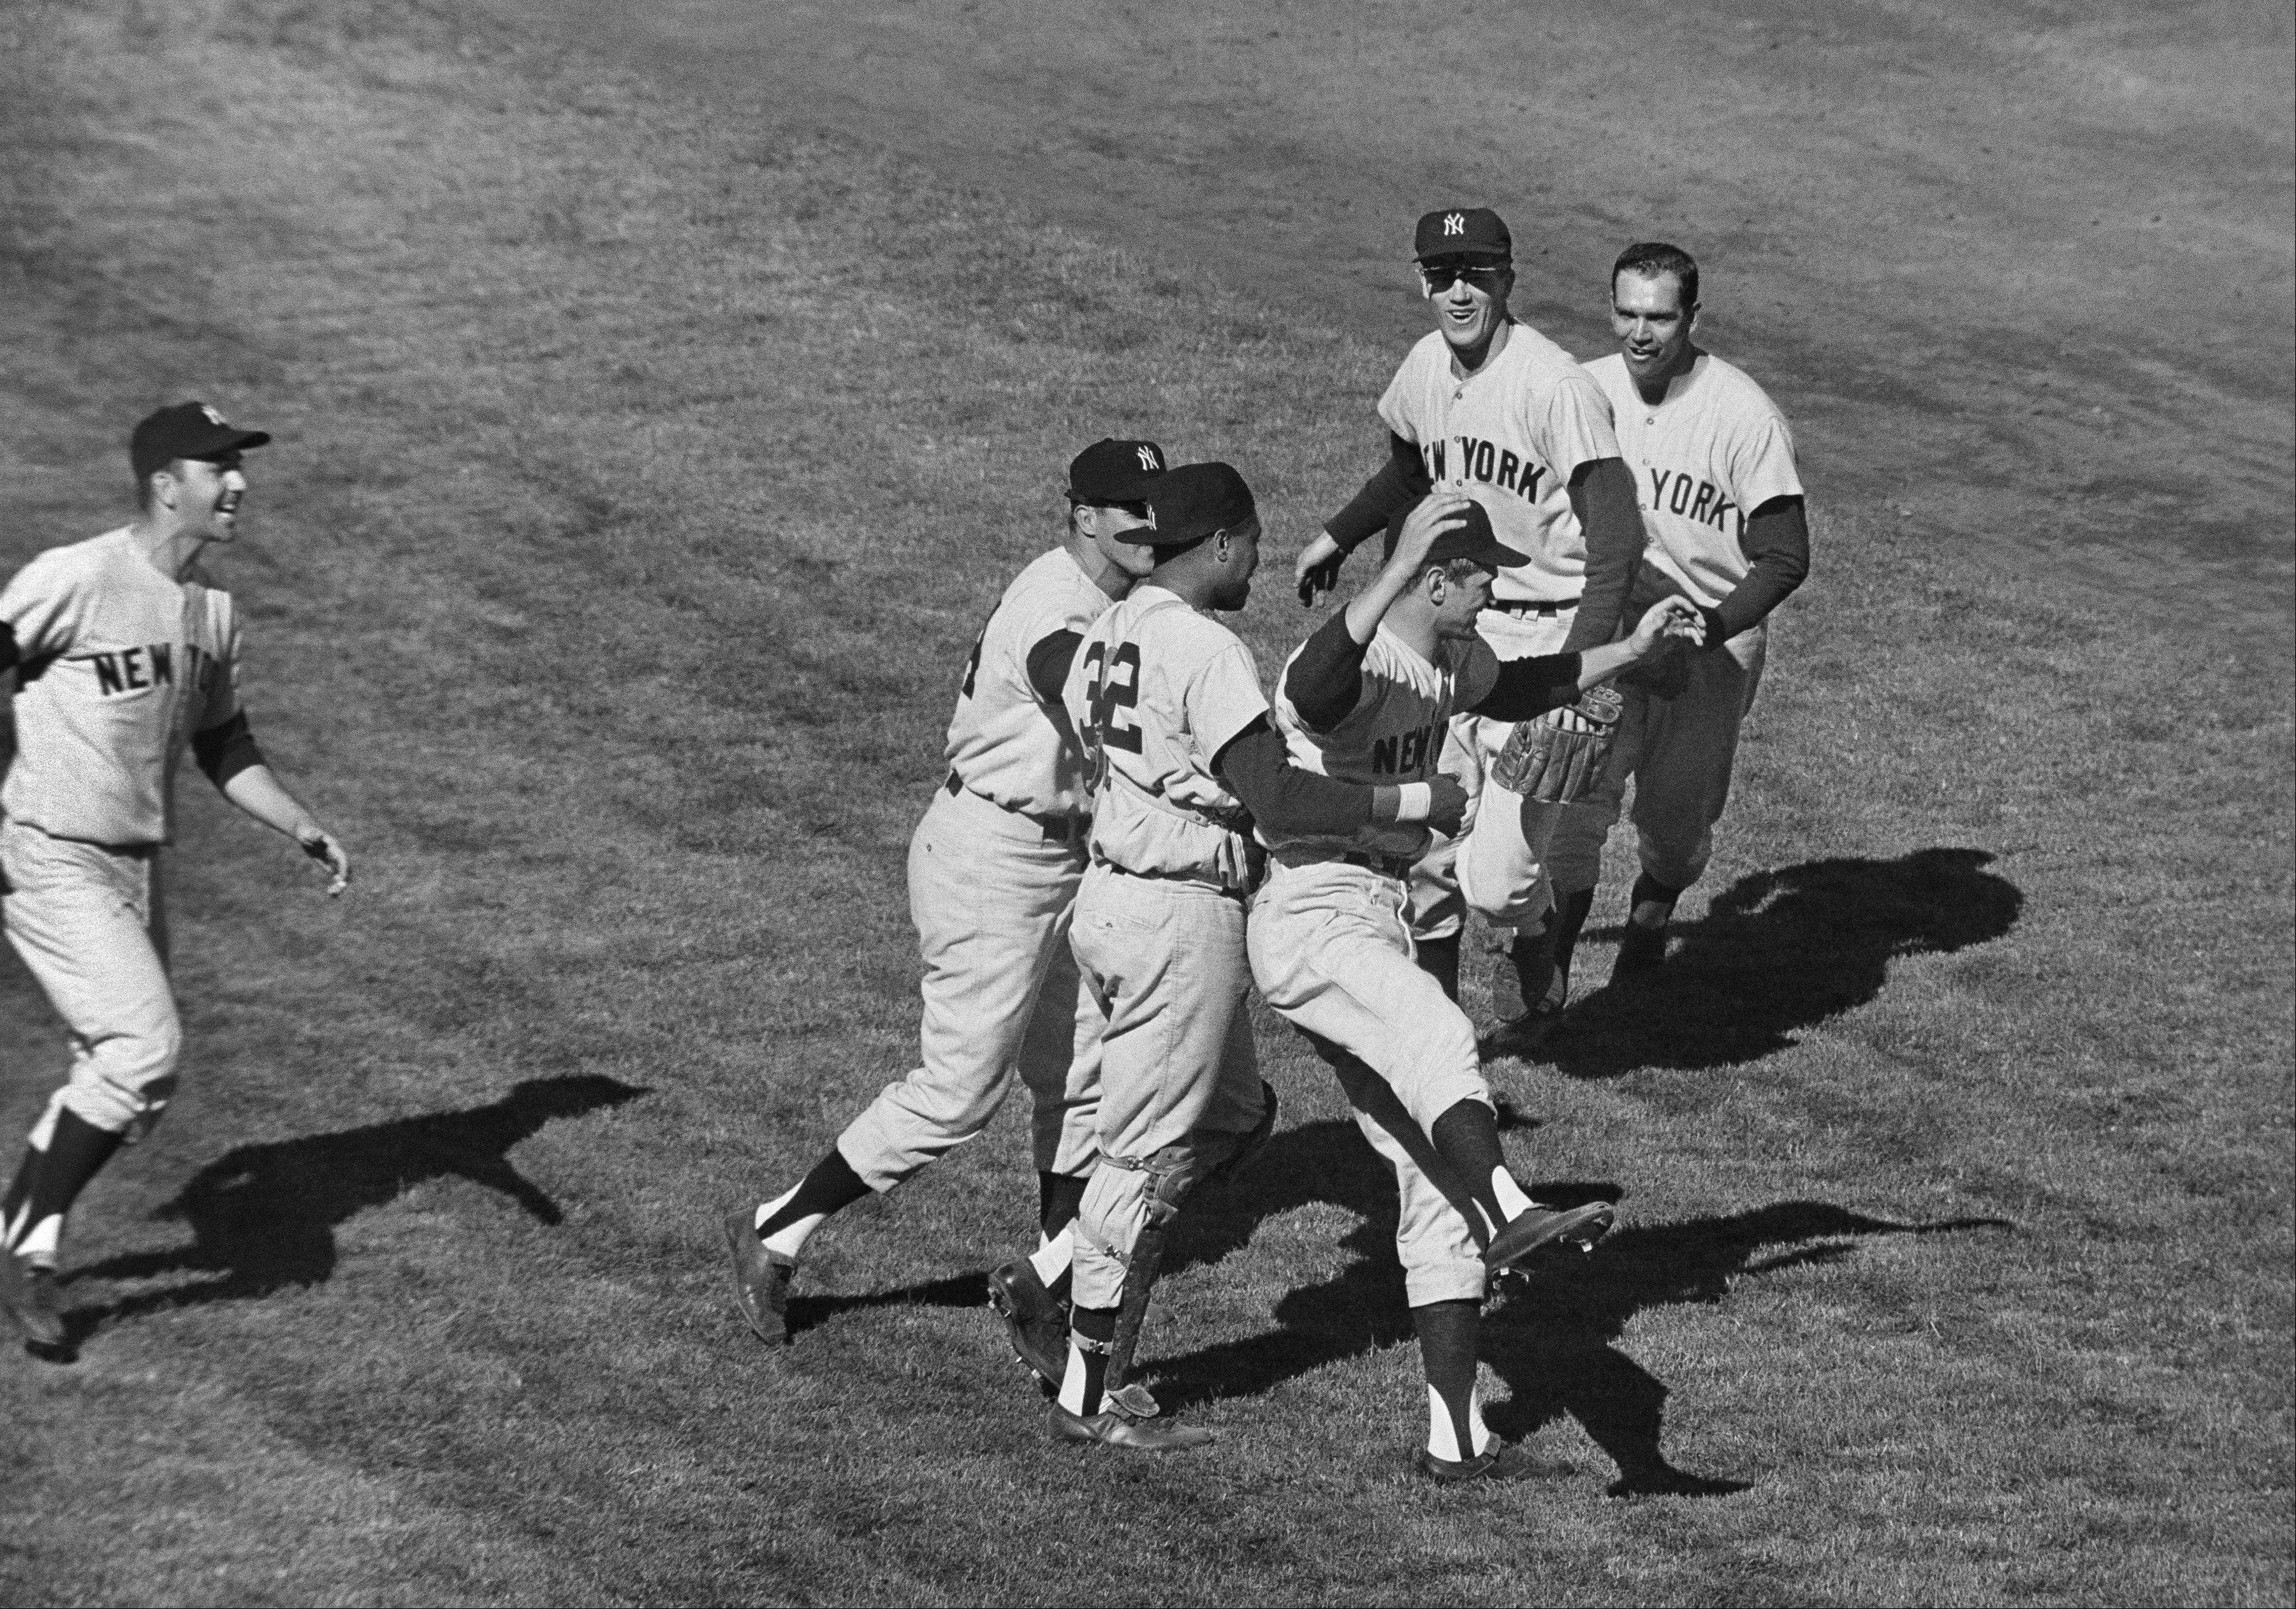 Yankees players celebrate at Candlestick Park, after beating the San Francisco Giants 1-0 in Game 7 of the World Series, Oct. 16, 1962. In group at center, first baseman Bill Skowron, left, and catcher Elston Howard (32) rush winning pitcher Ralph Terry. In background are shortstop Tony Kubek, left, and second baseman Bobby Richardson.